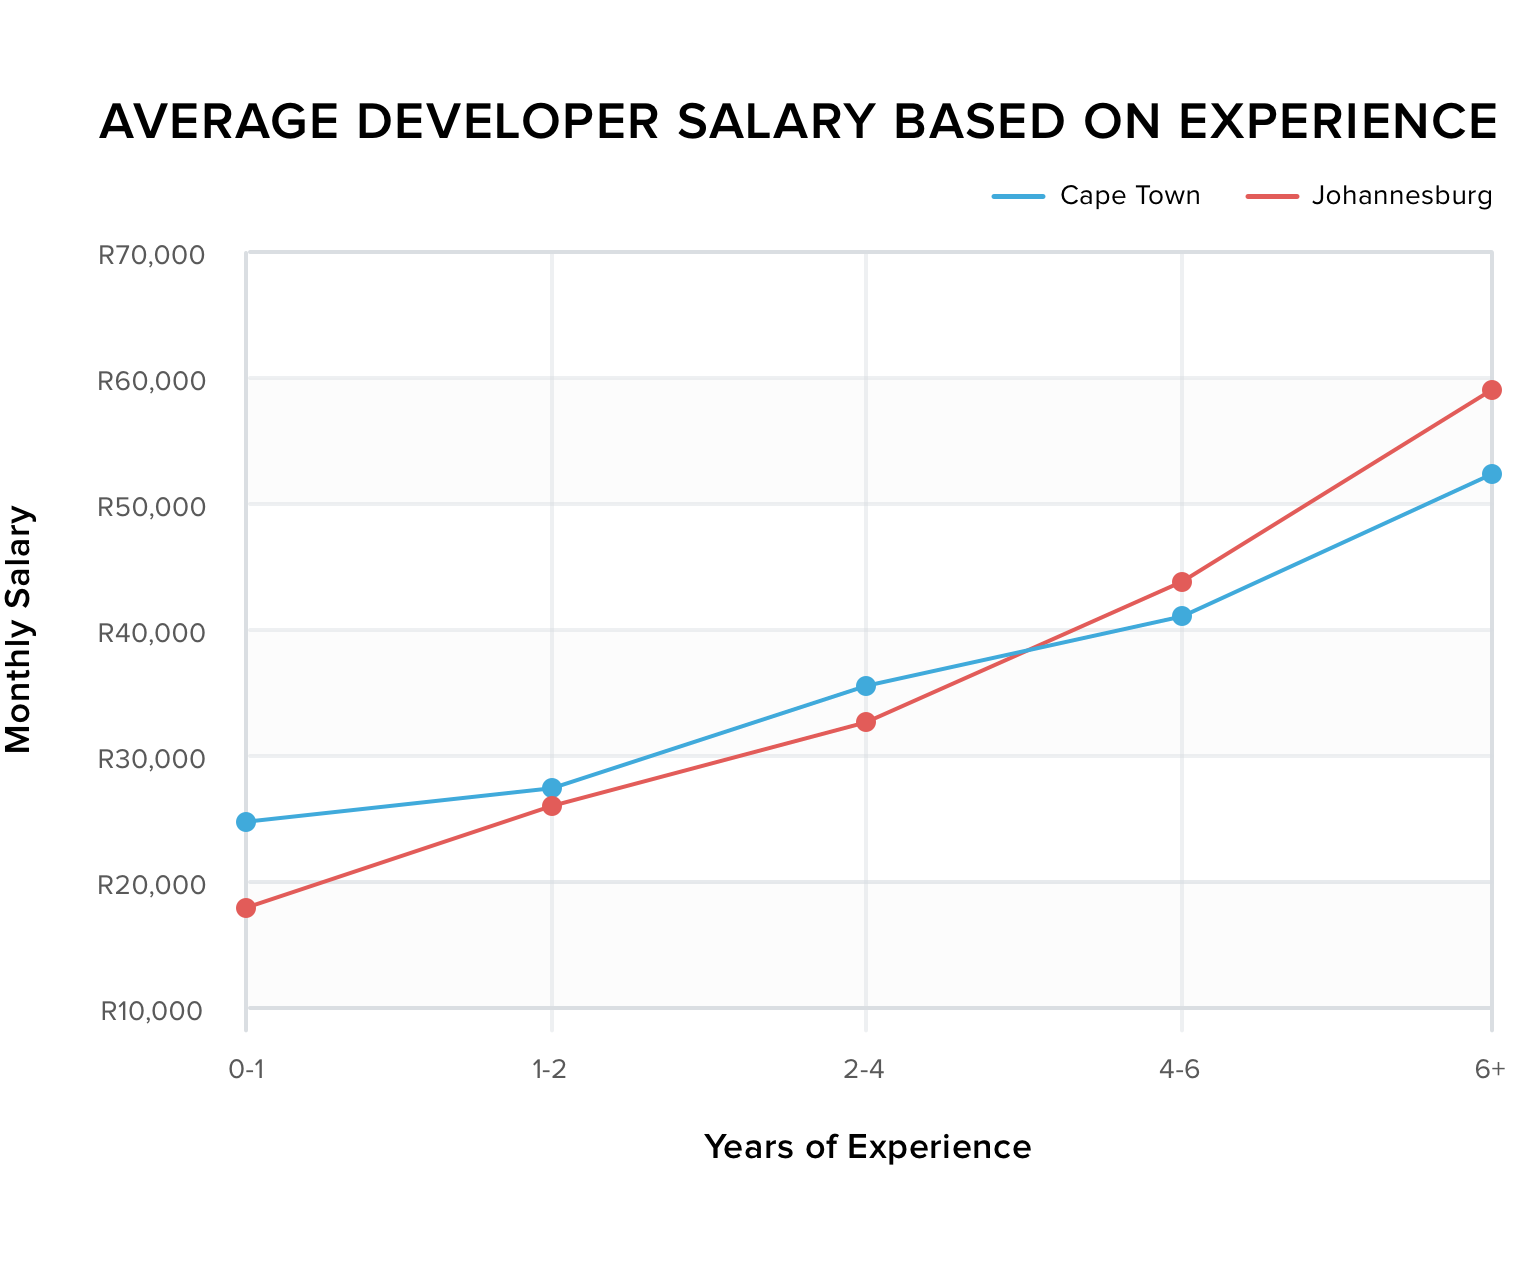 Average developer salary based on experience